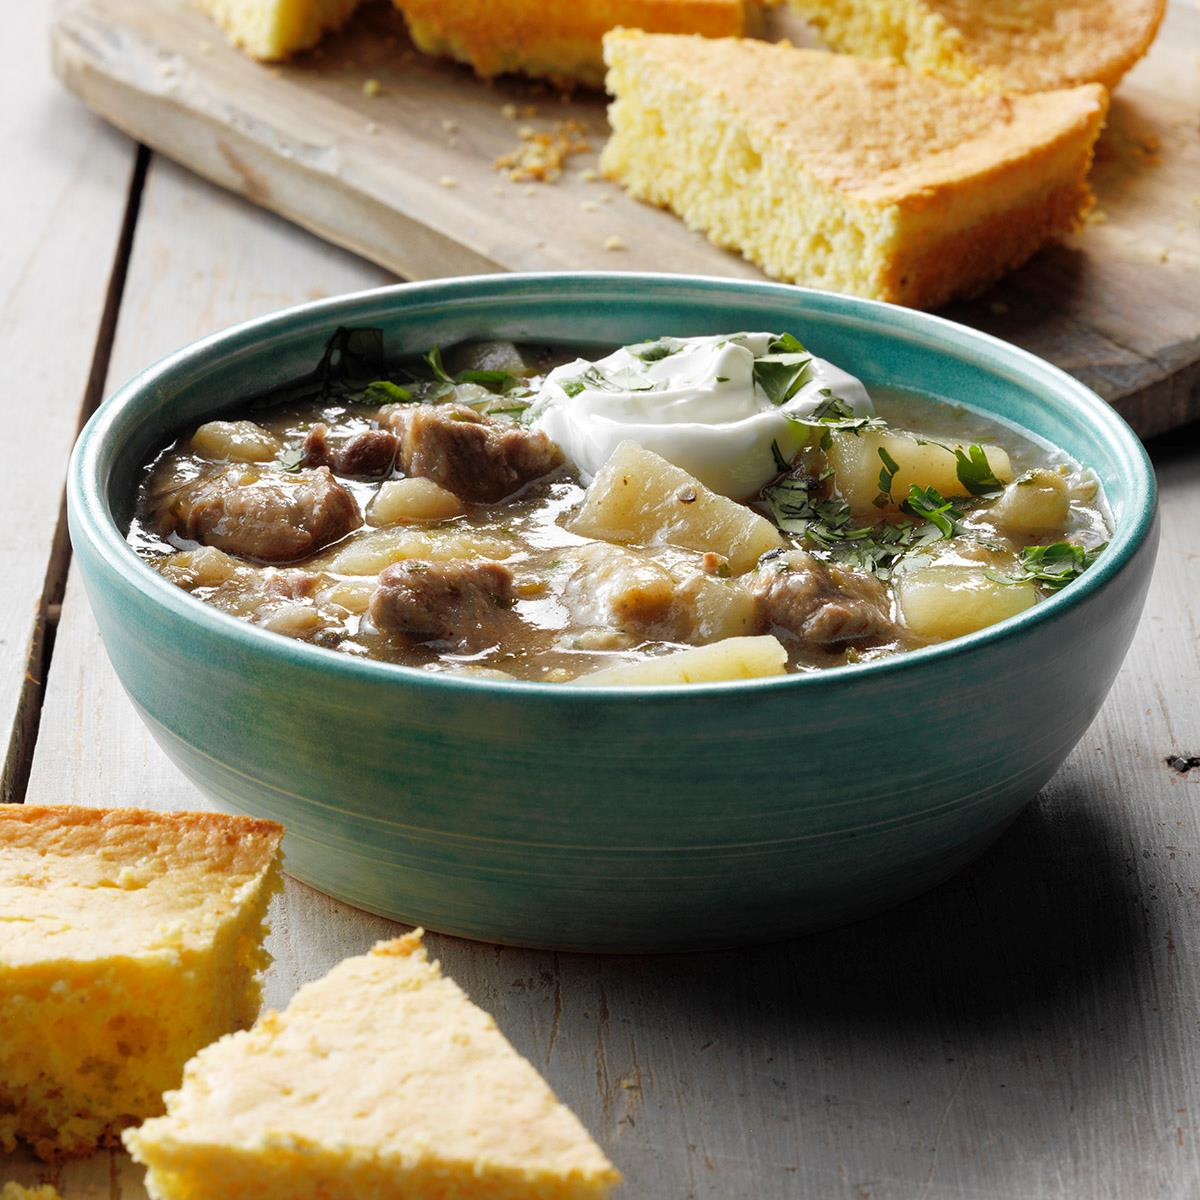 Pork and Green Chile Stew